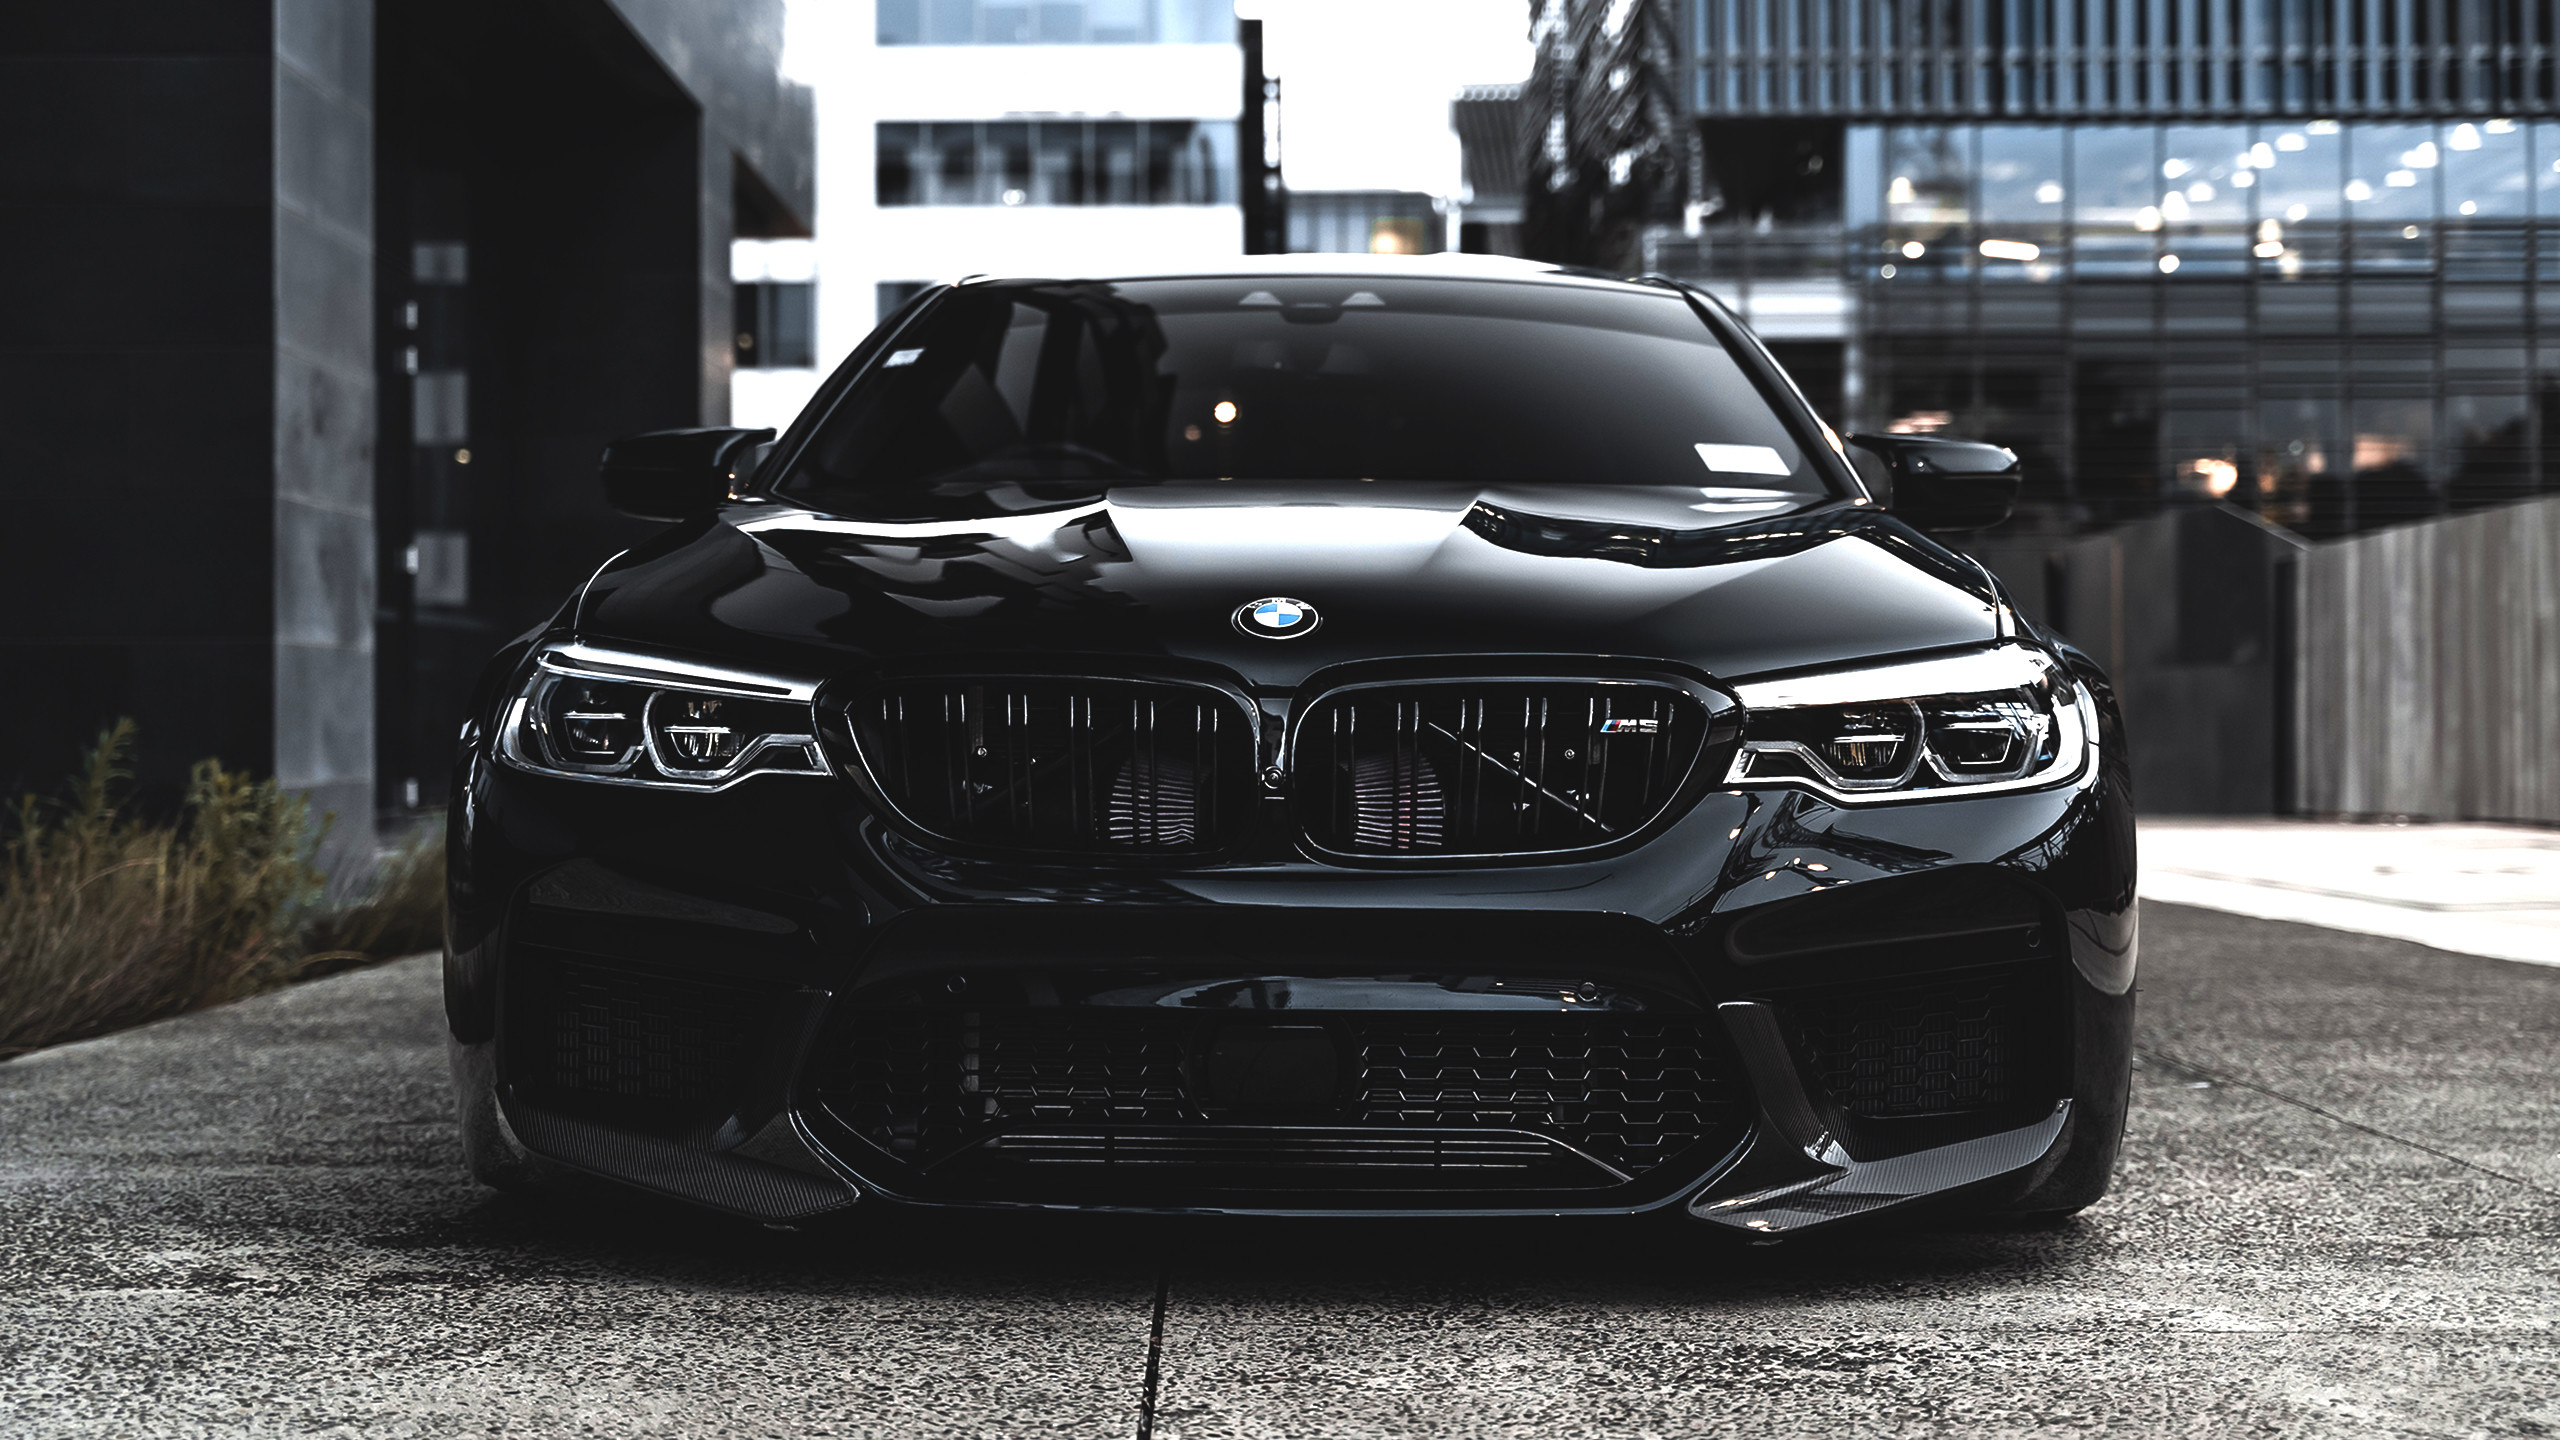 Bmw E60 M5 Wallpapers Posted By John Peltier